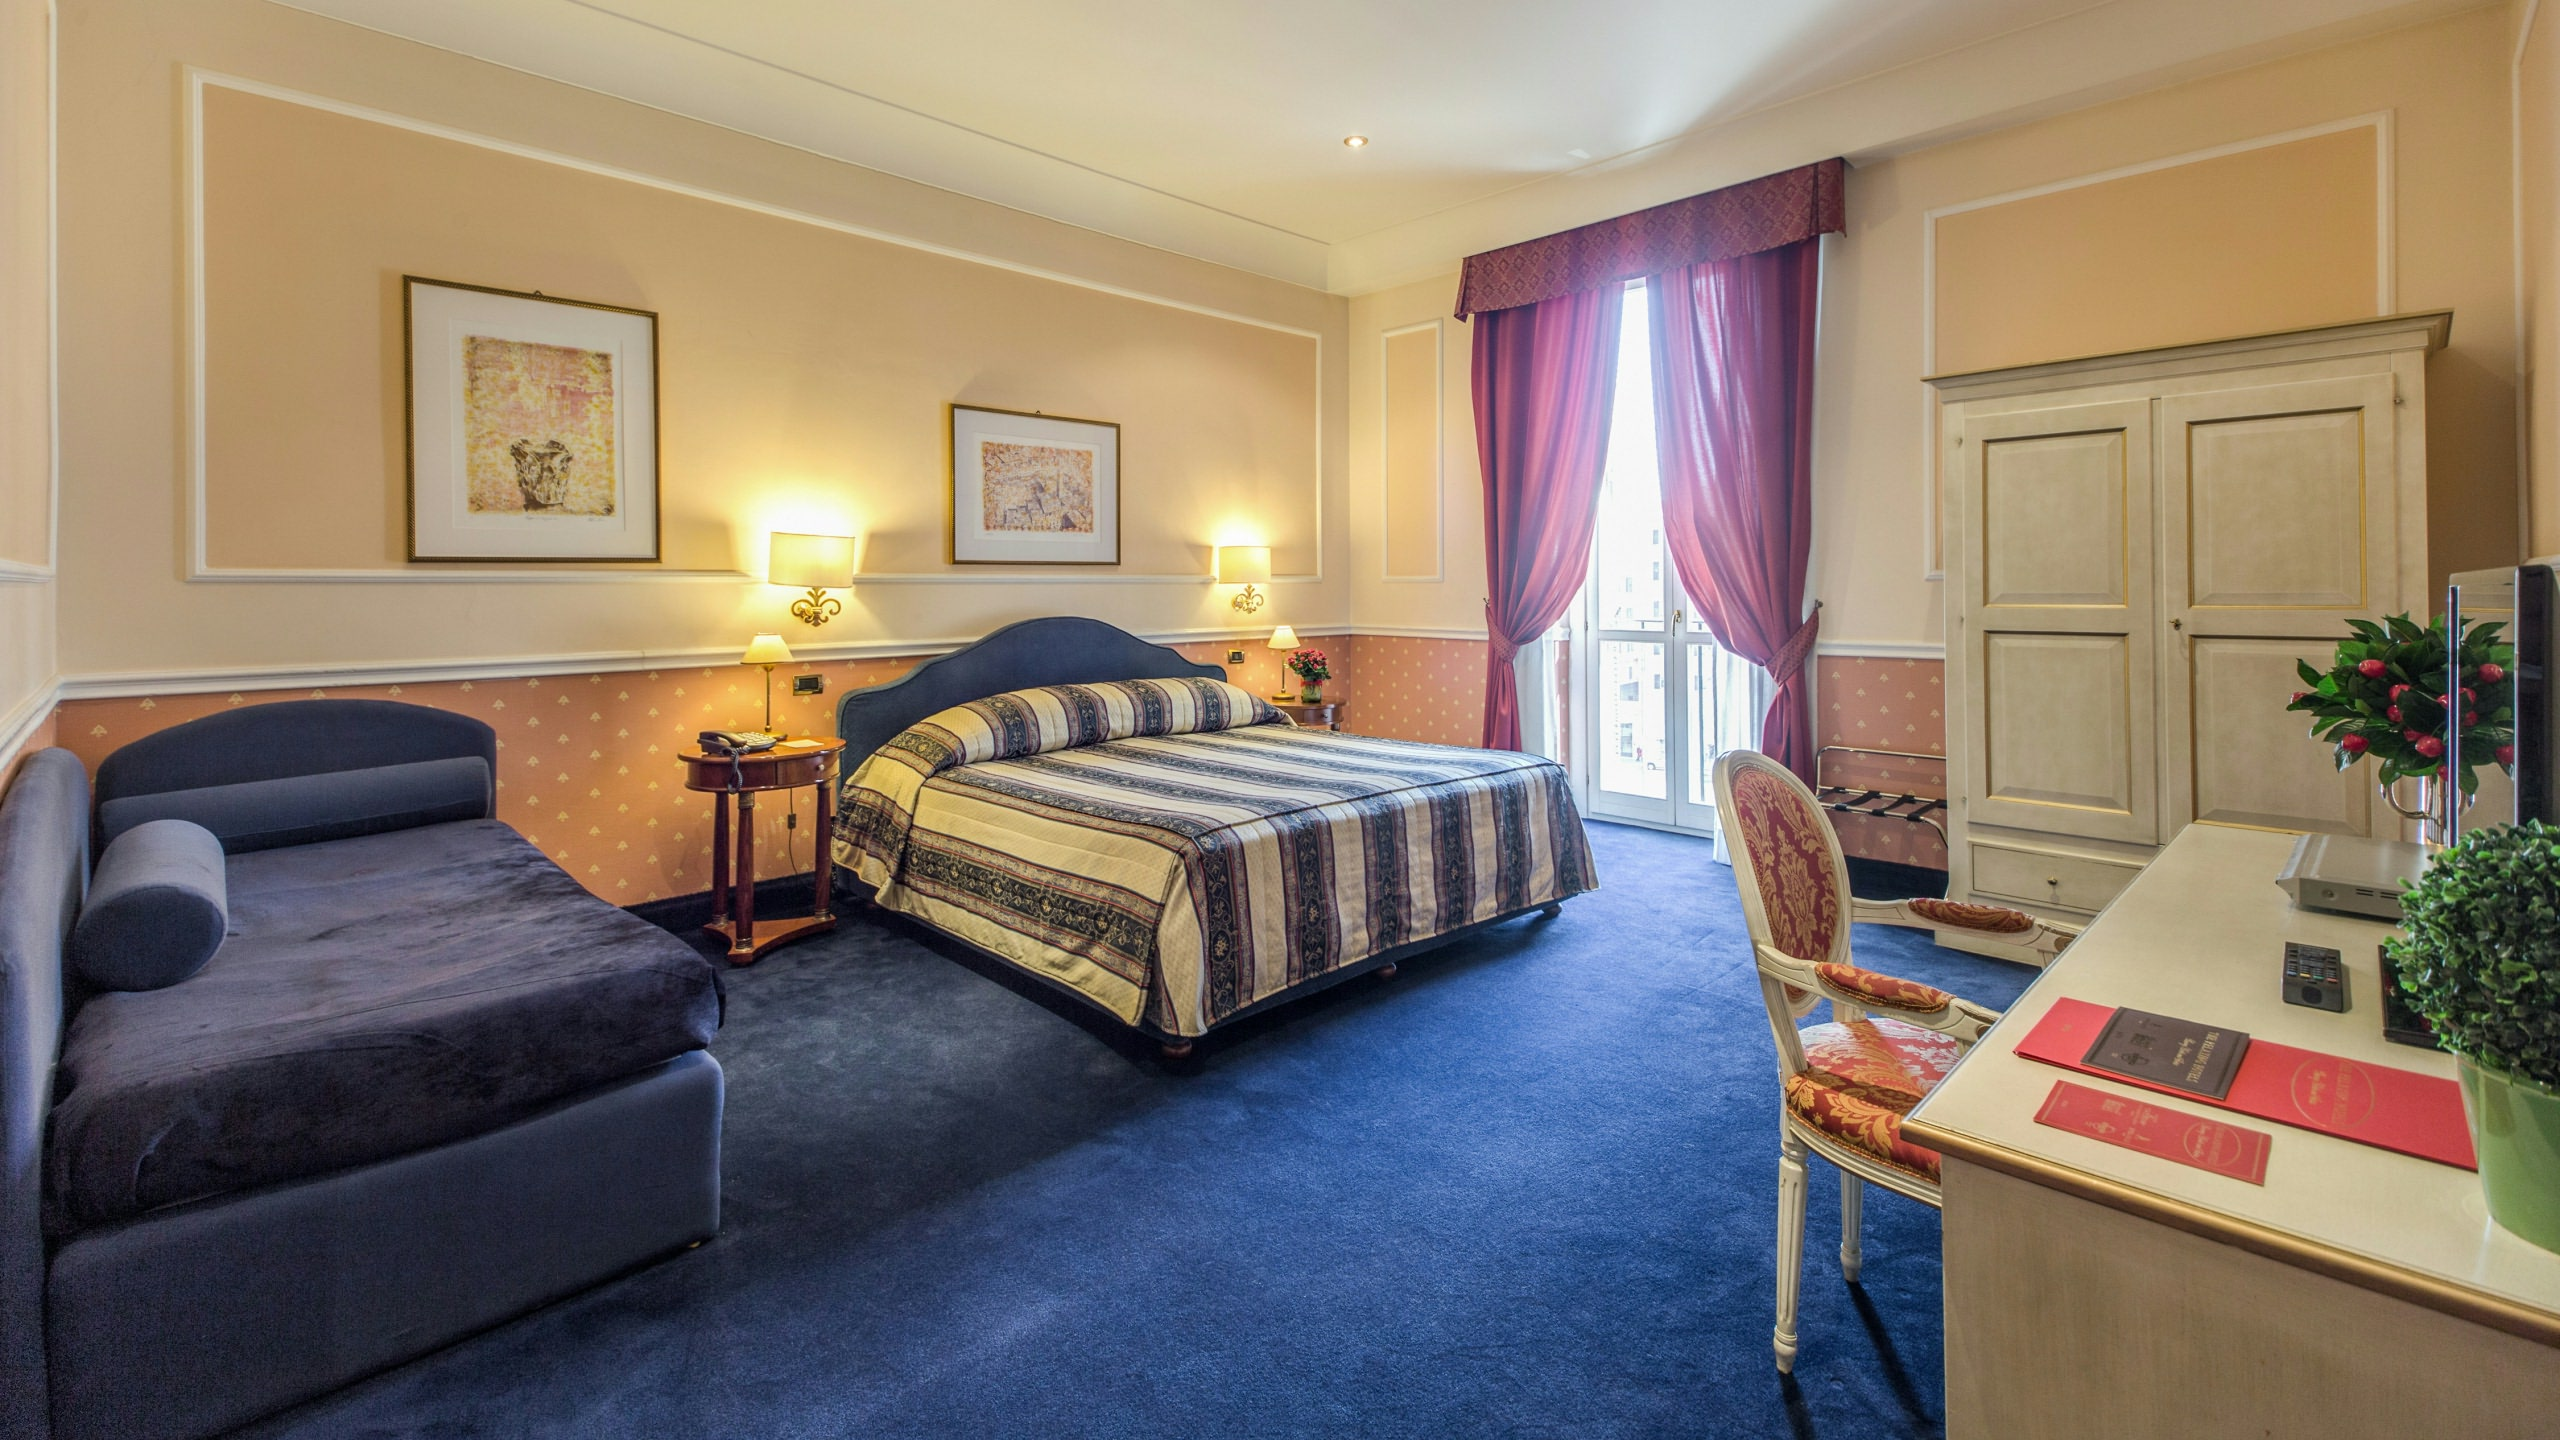 Schlafzimmer Roma Hotel Antico Palazzo Rospigliosi Rom Offizielle Webseite Home